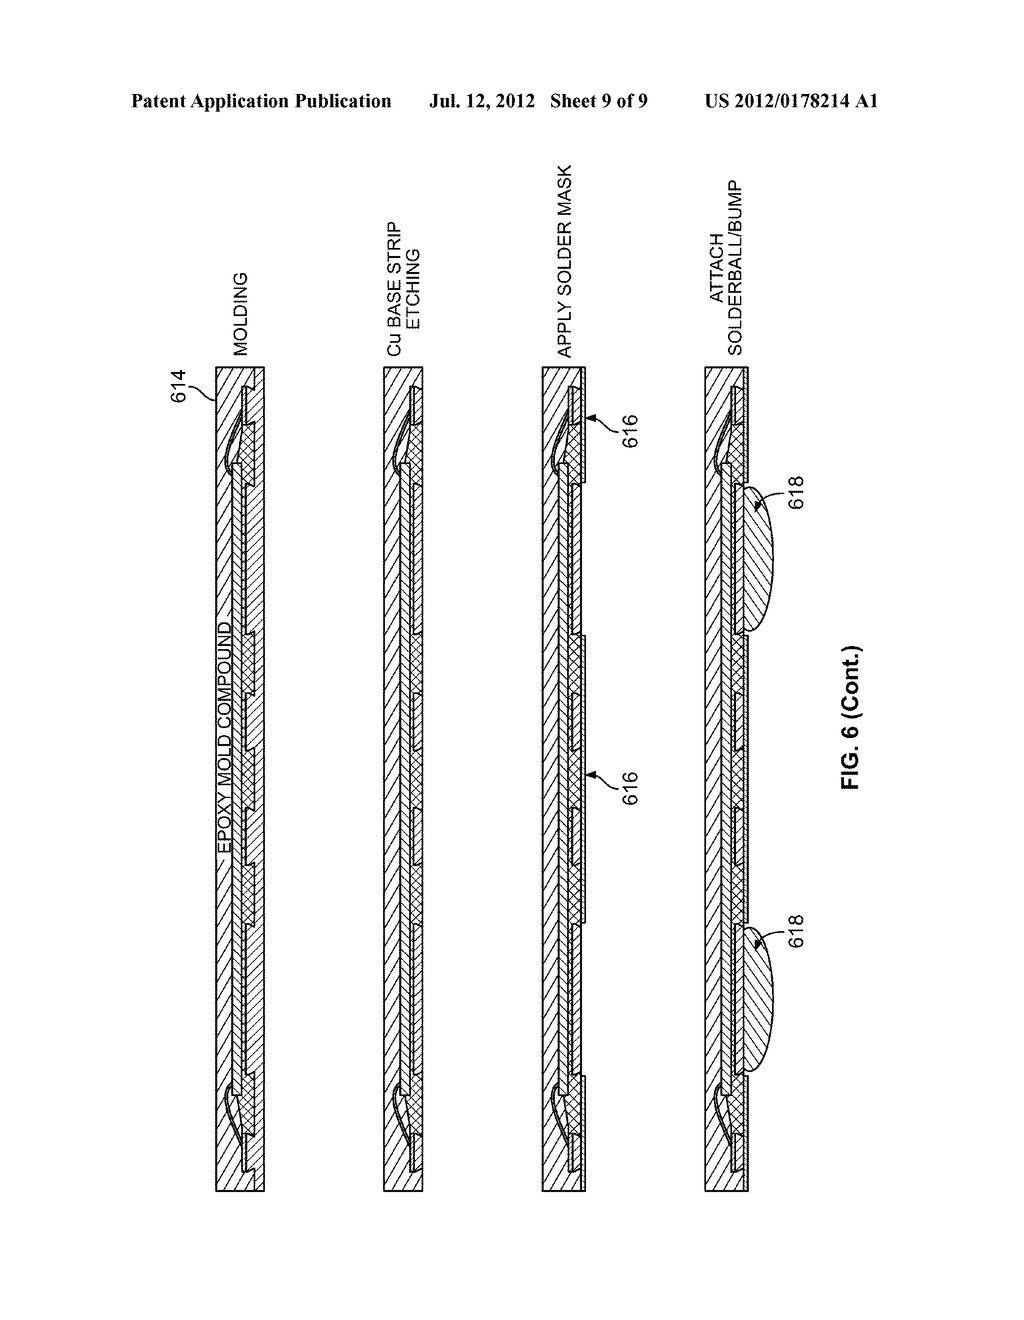 ROUTABLE ARRAY METAL INTEGRATED CIRCUIT PACKAGE FABRICATED